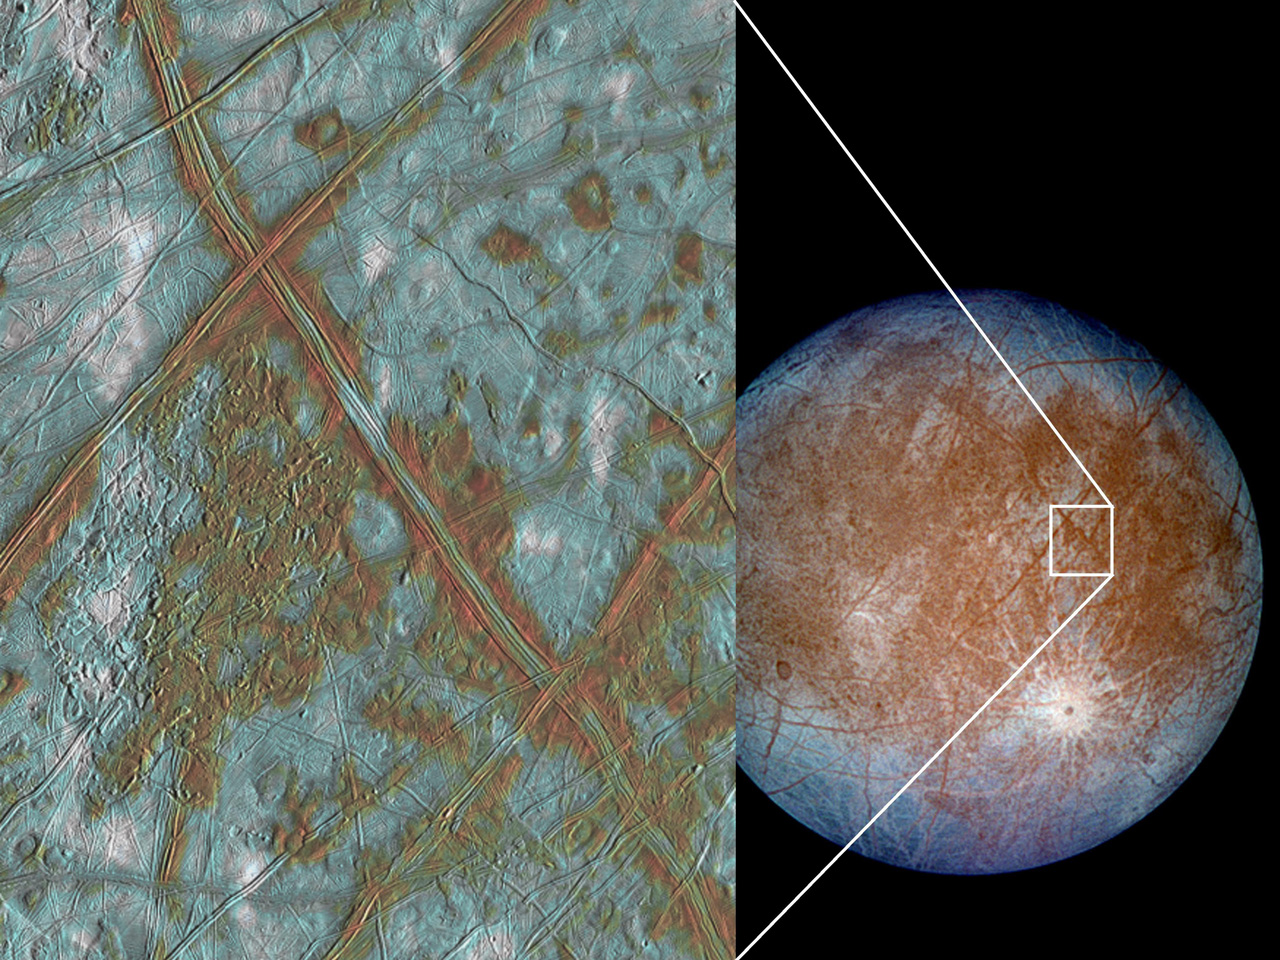 Pullout showing detail on Europa's surface.